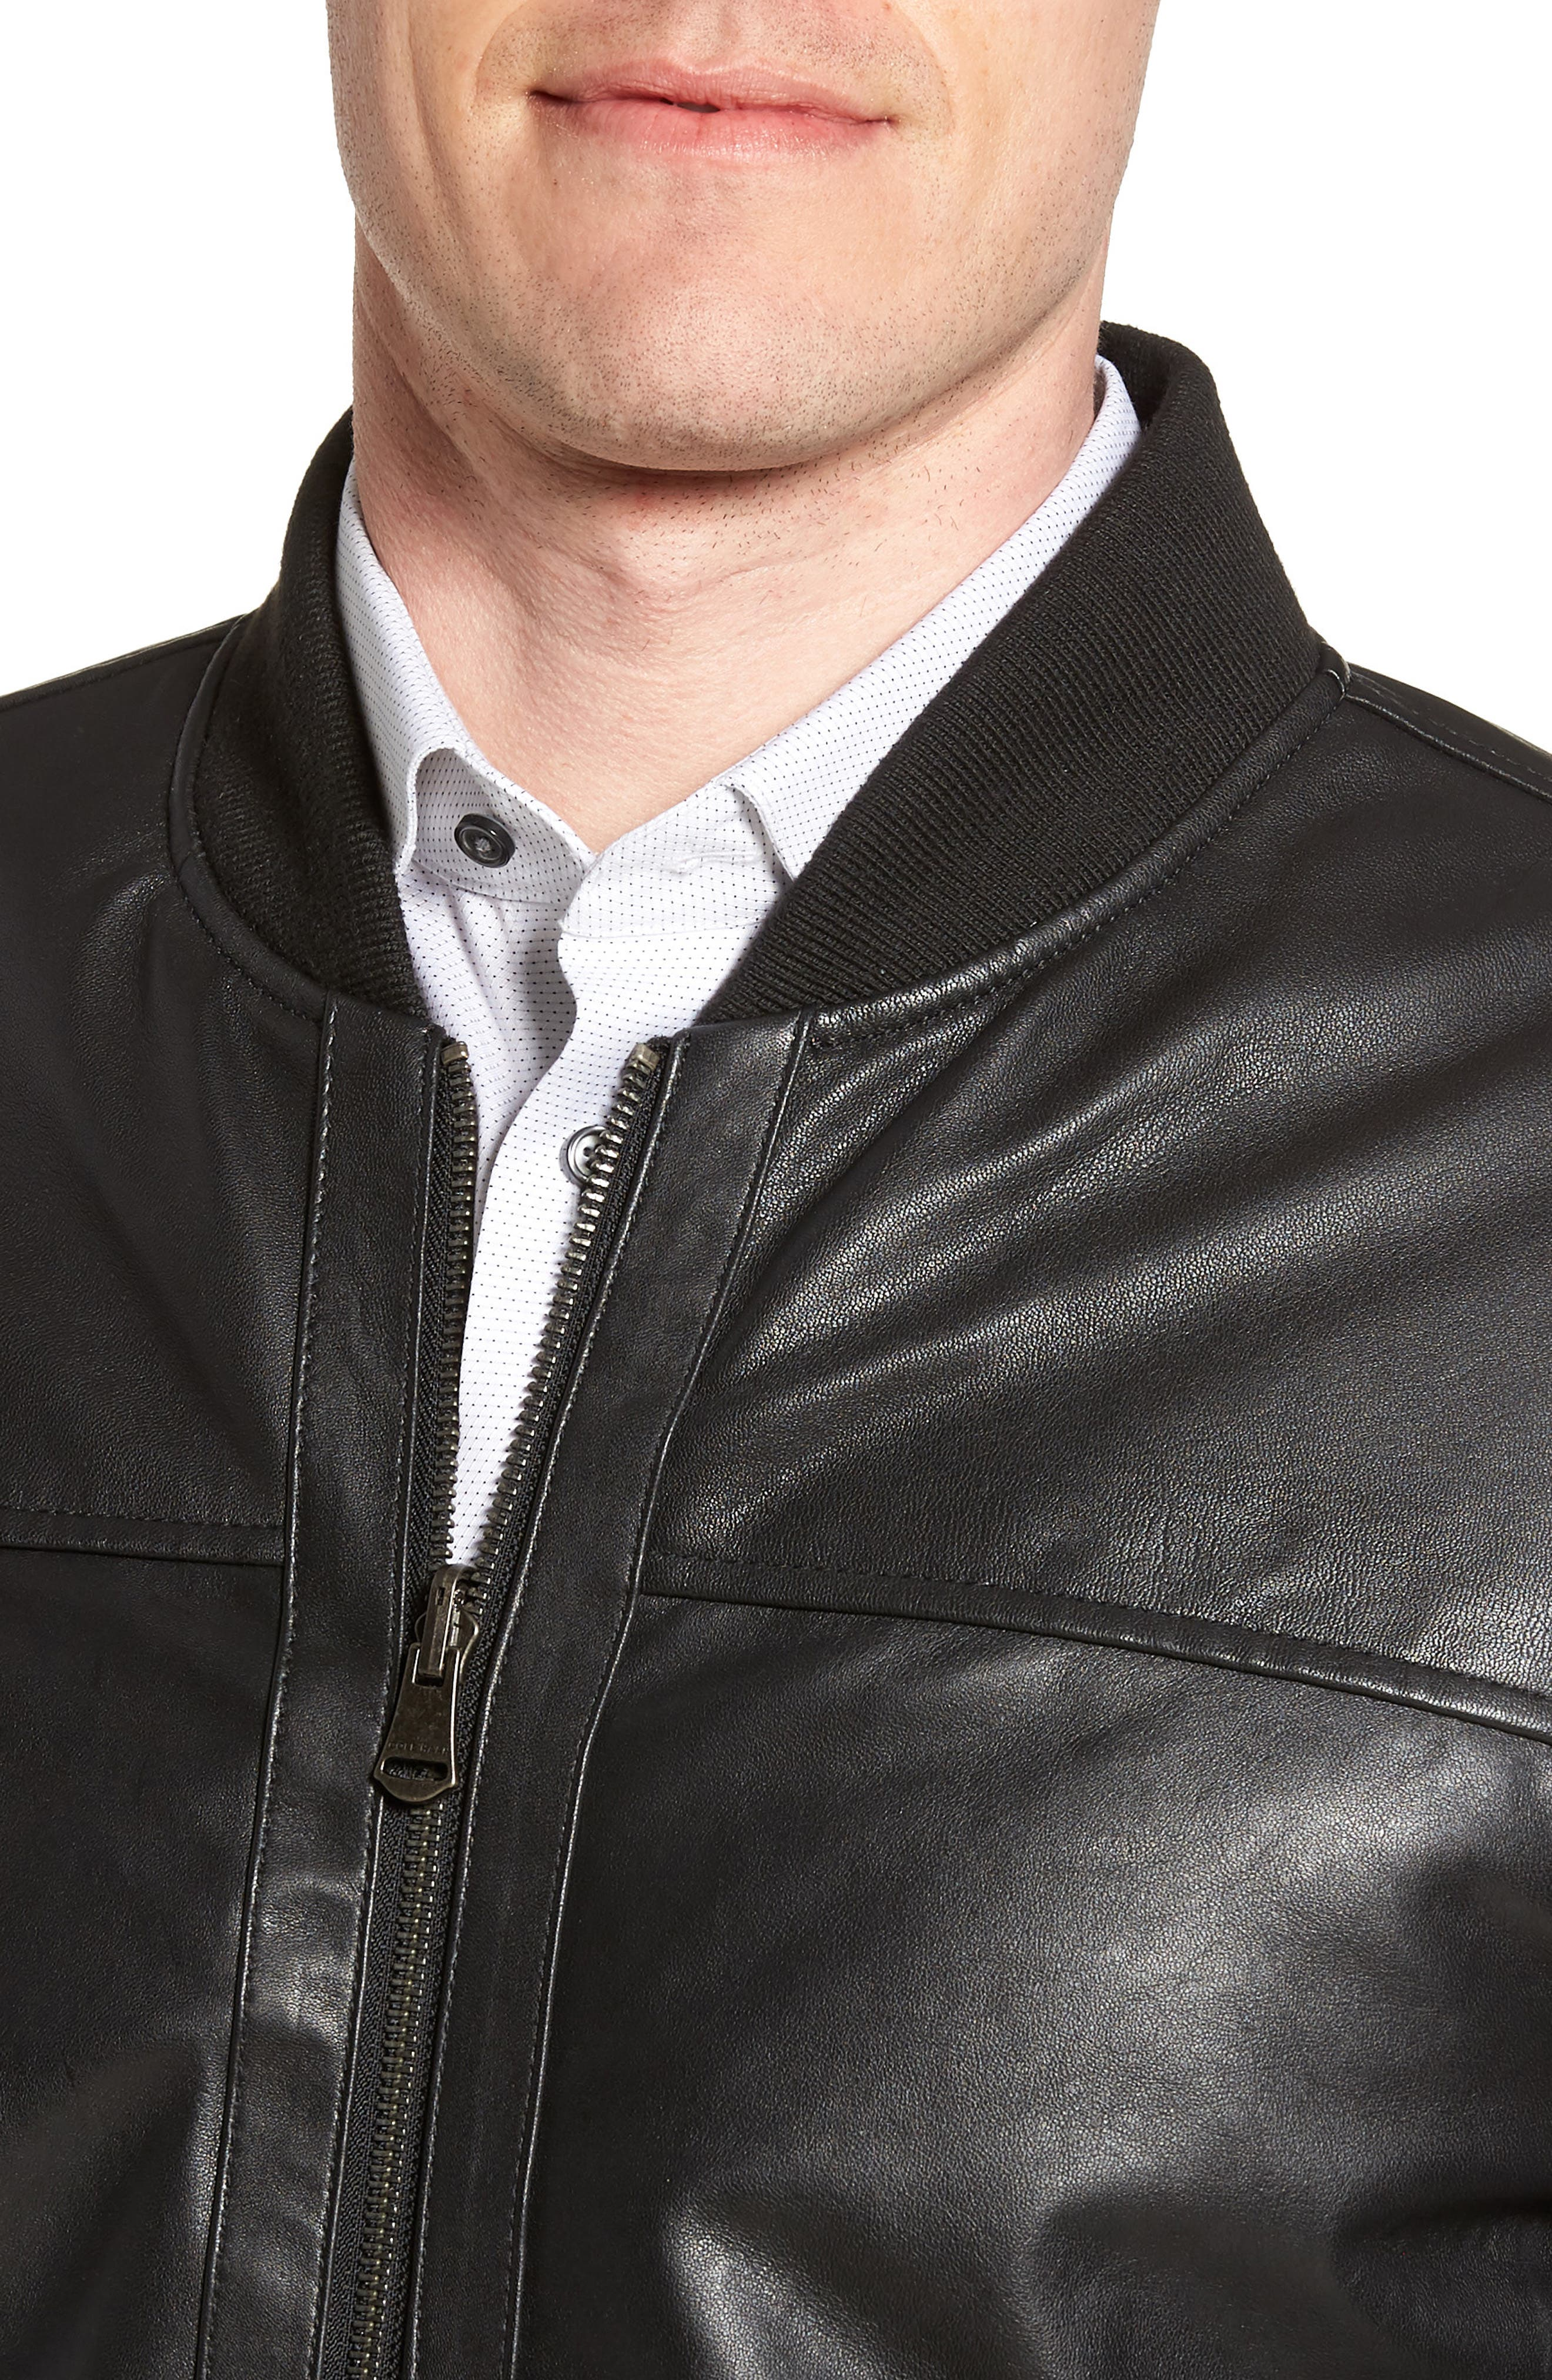 Reversible Leather Jacket,                             Alternate thumbnail 5, color,